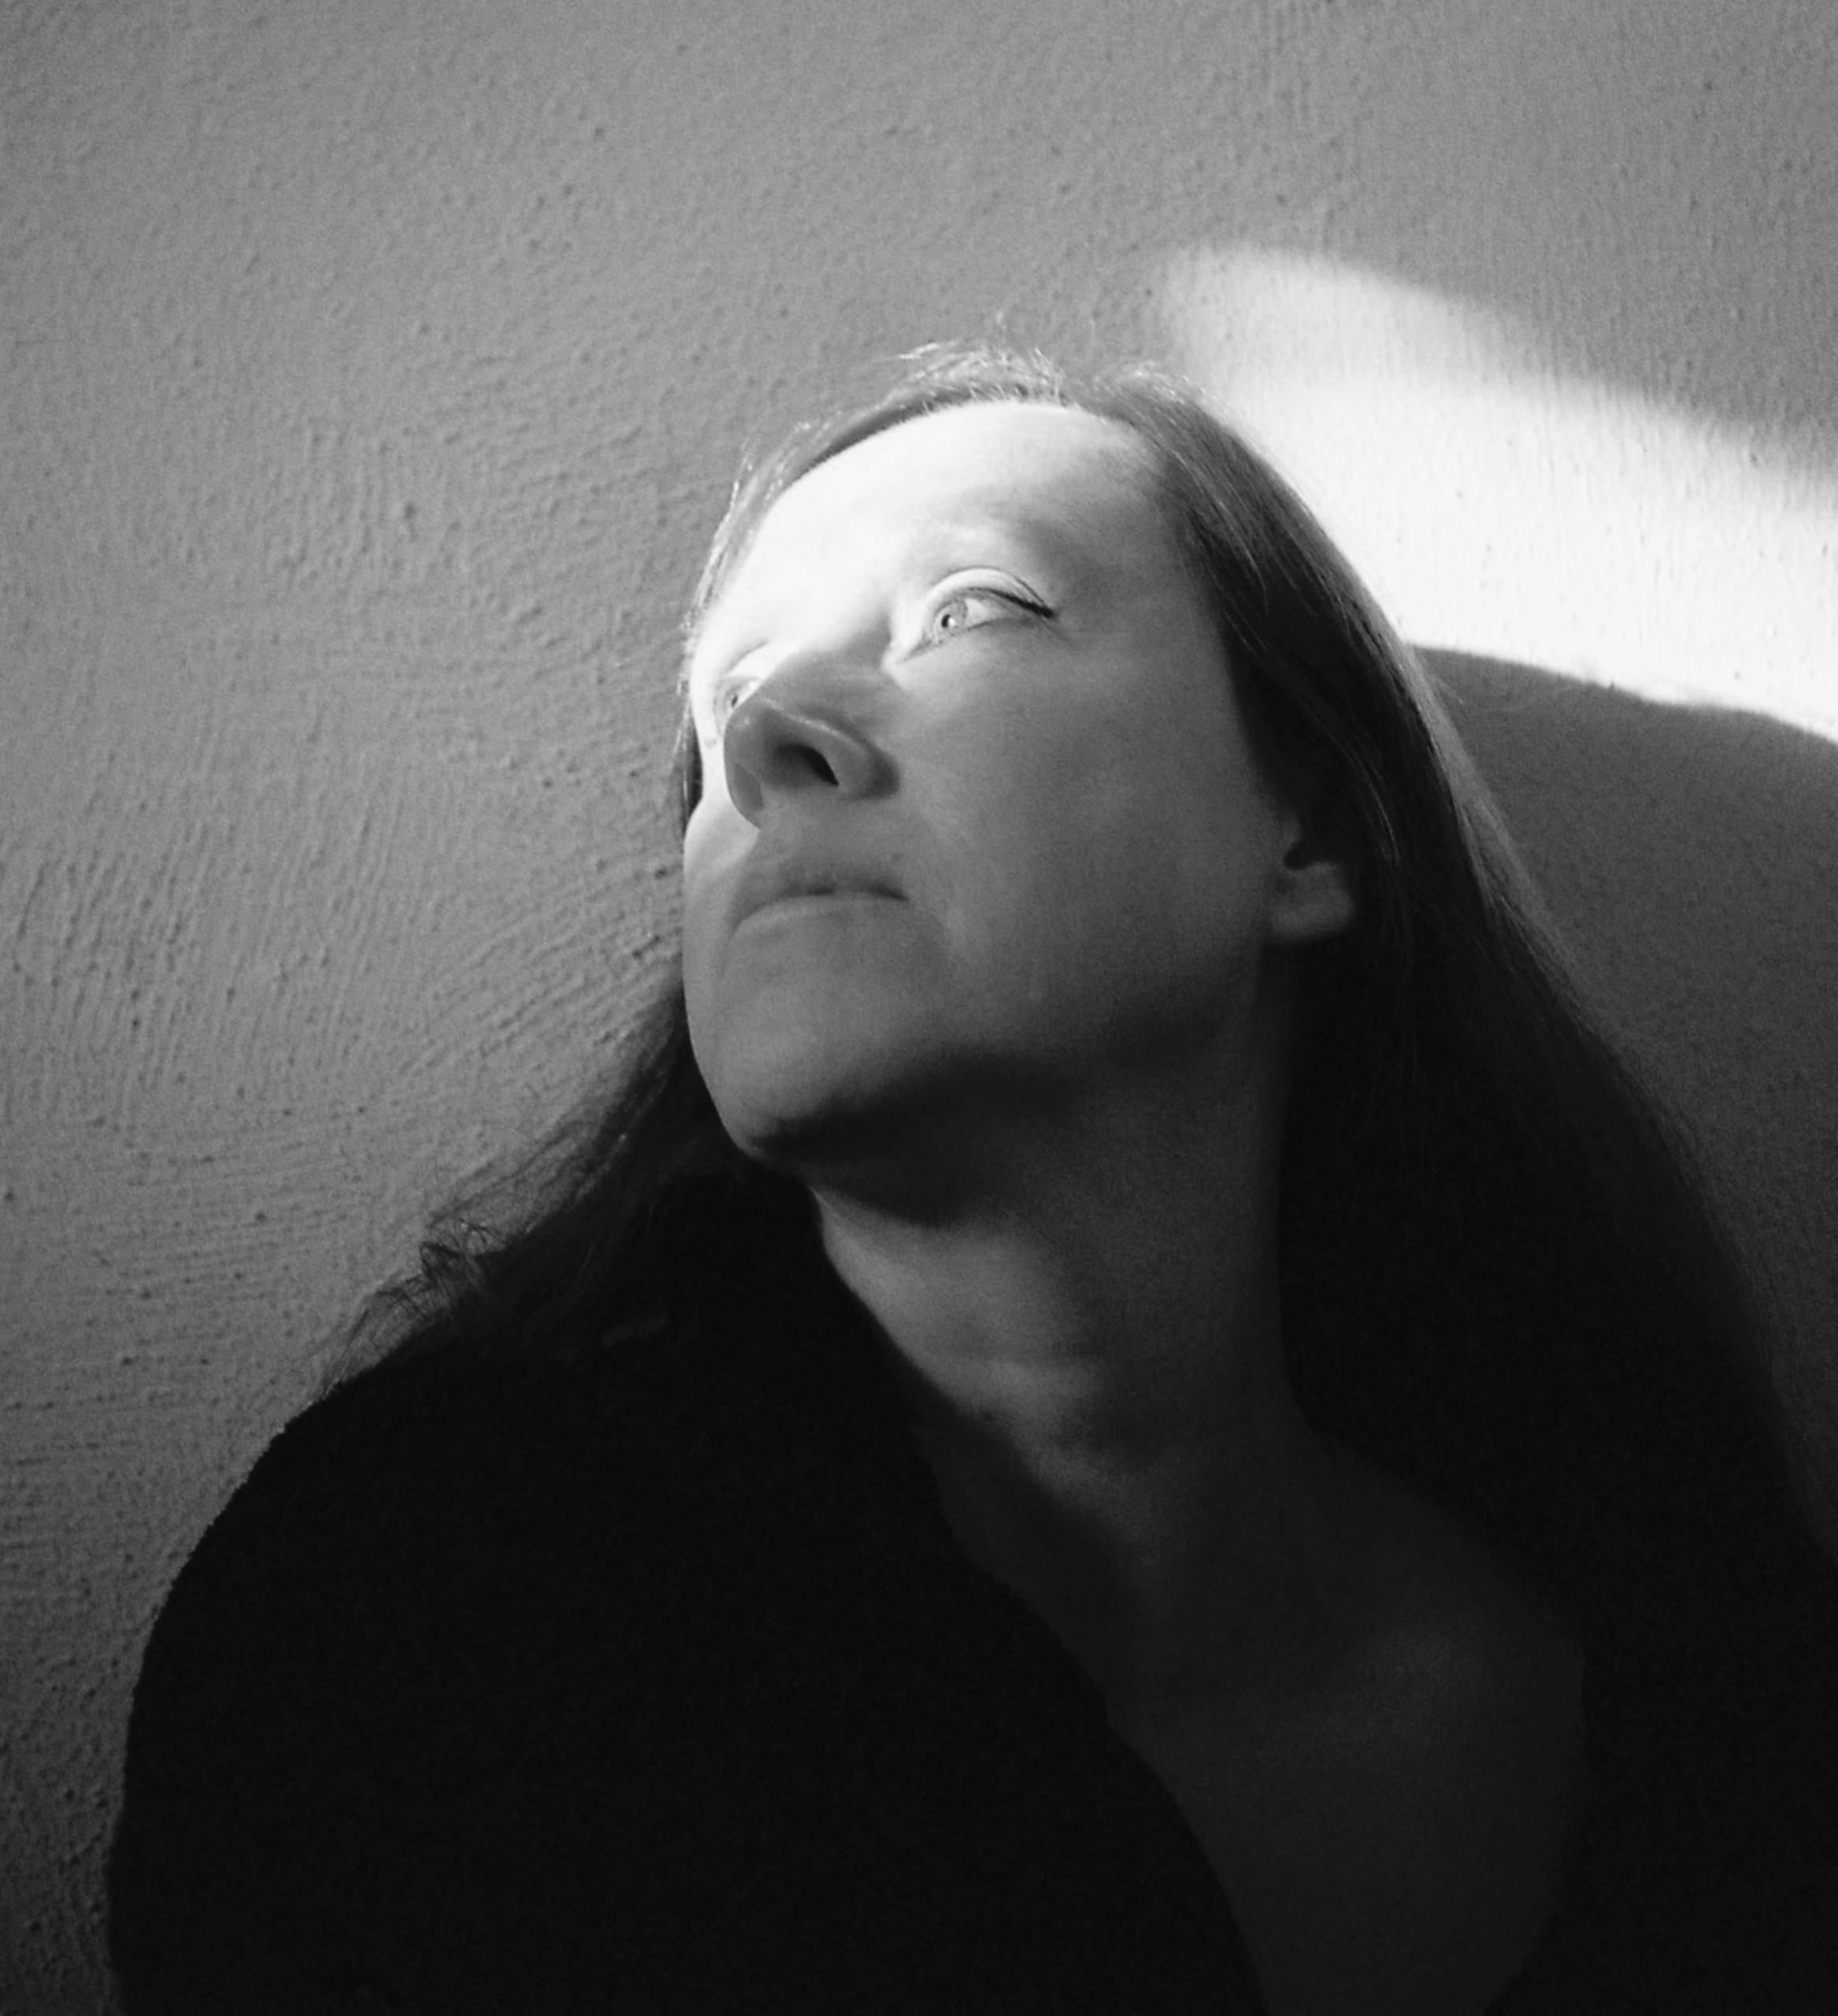 Lique Schoot, Self-portrait 20 01 05